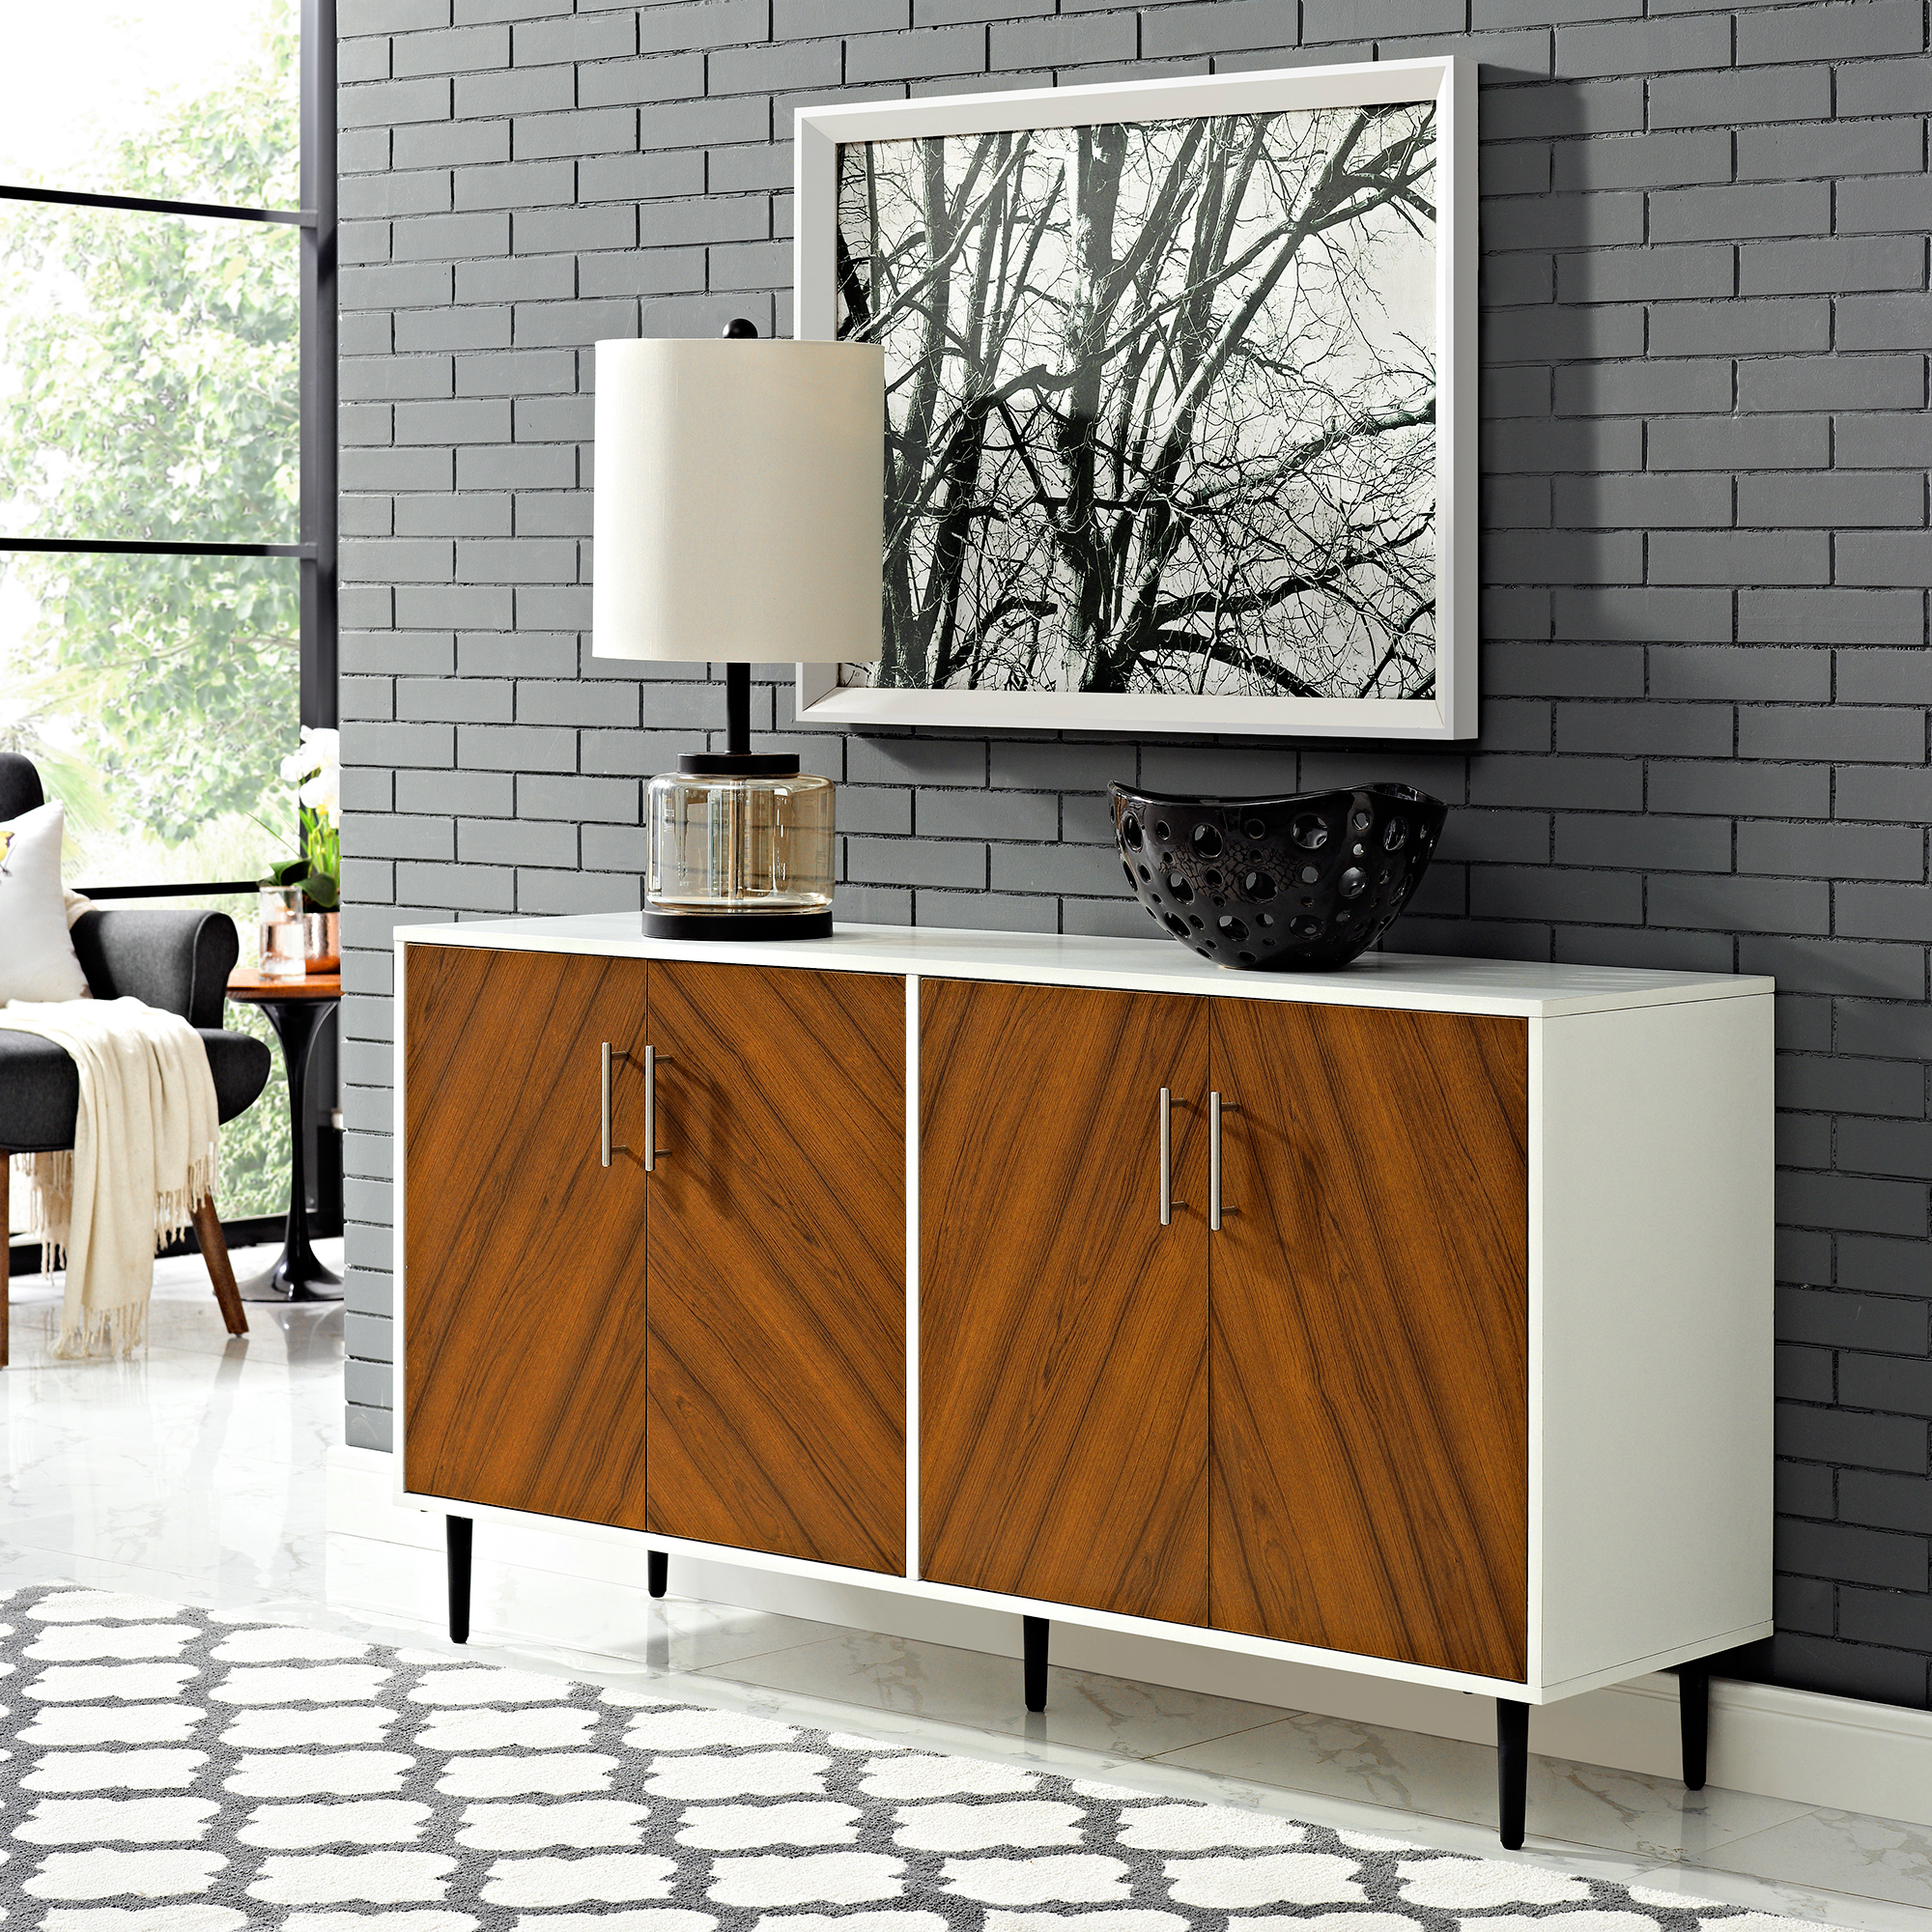 Manor Park Mid Century Modern Bookmatch Buffet – White/teak Throughout Keiko Modern Bookmatch Sideboards (View 9 of 20)